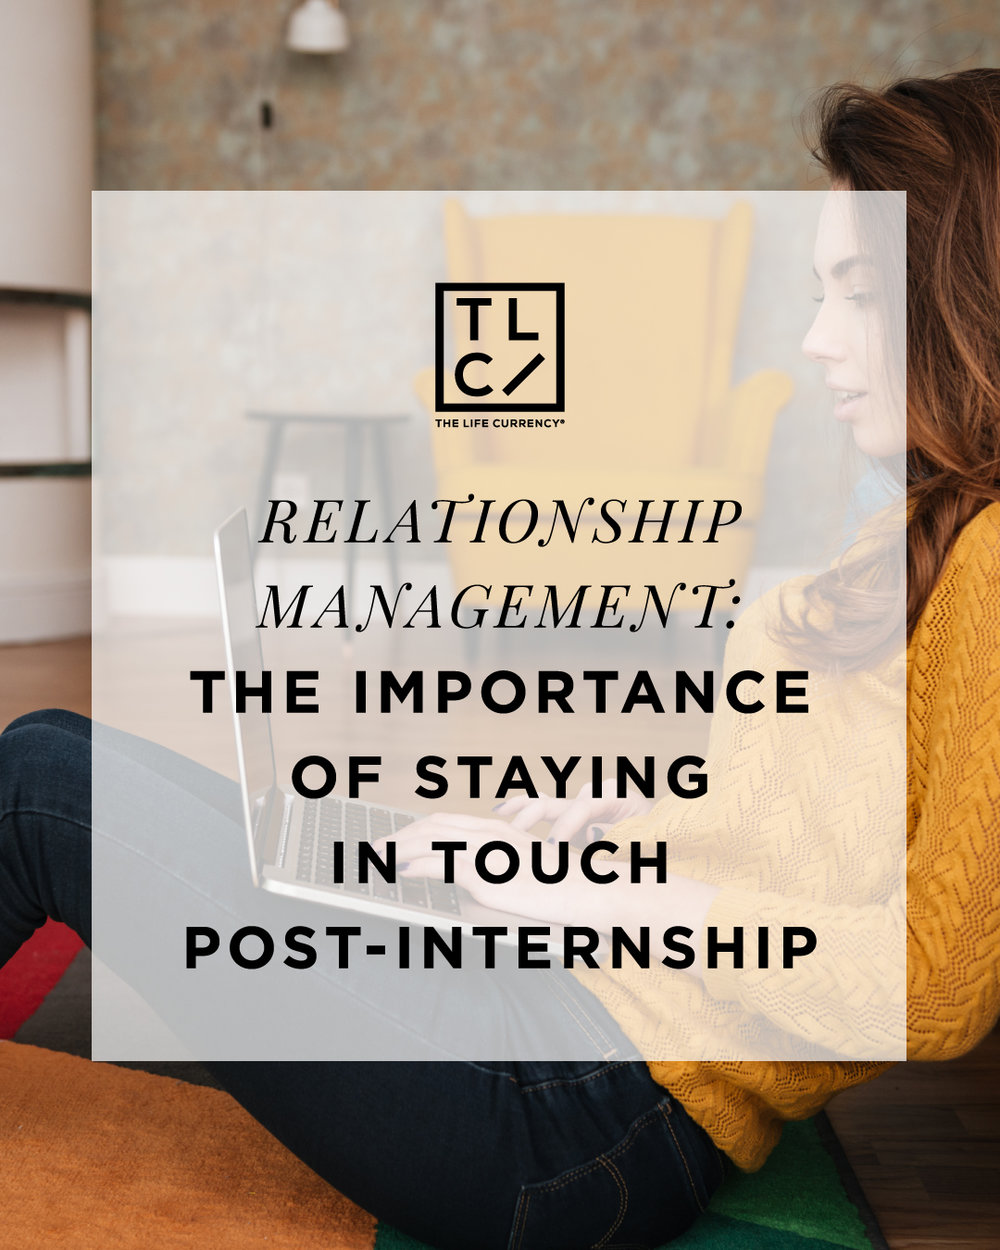 Relationship Management: The Importance of Staying in Touch Post-Internship